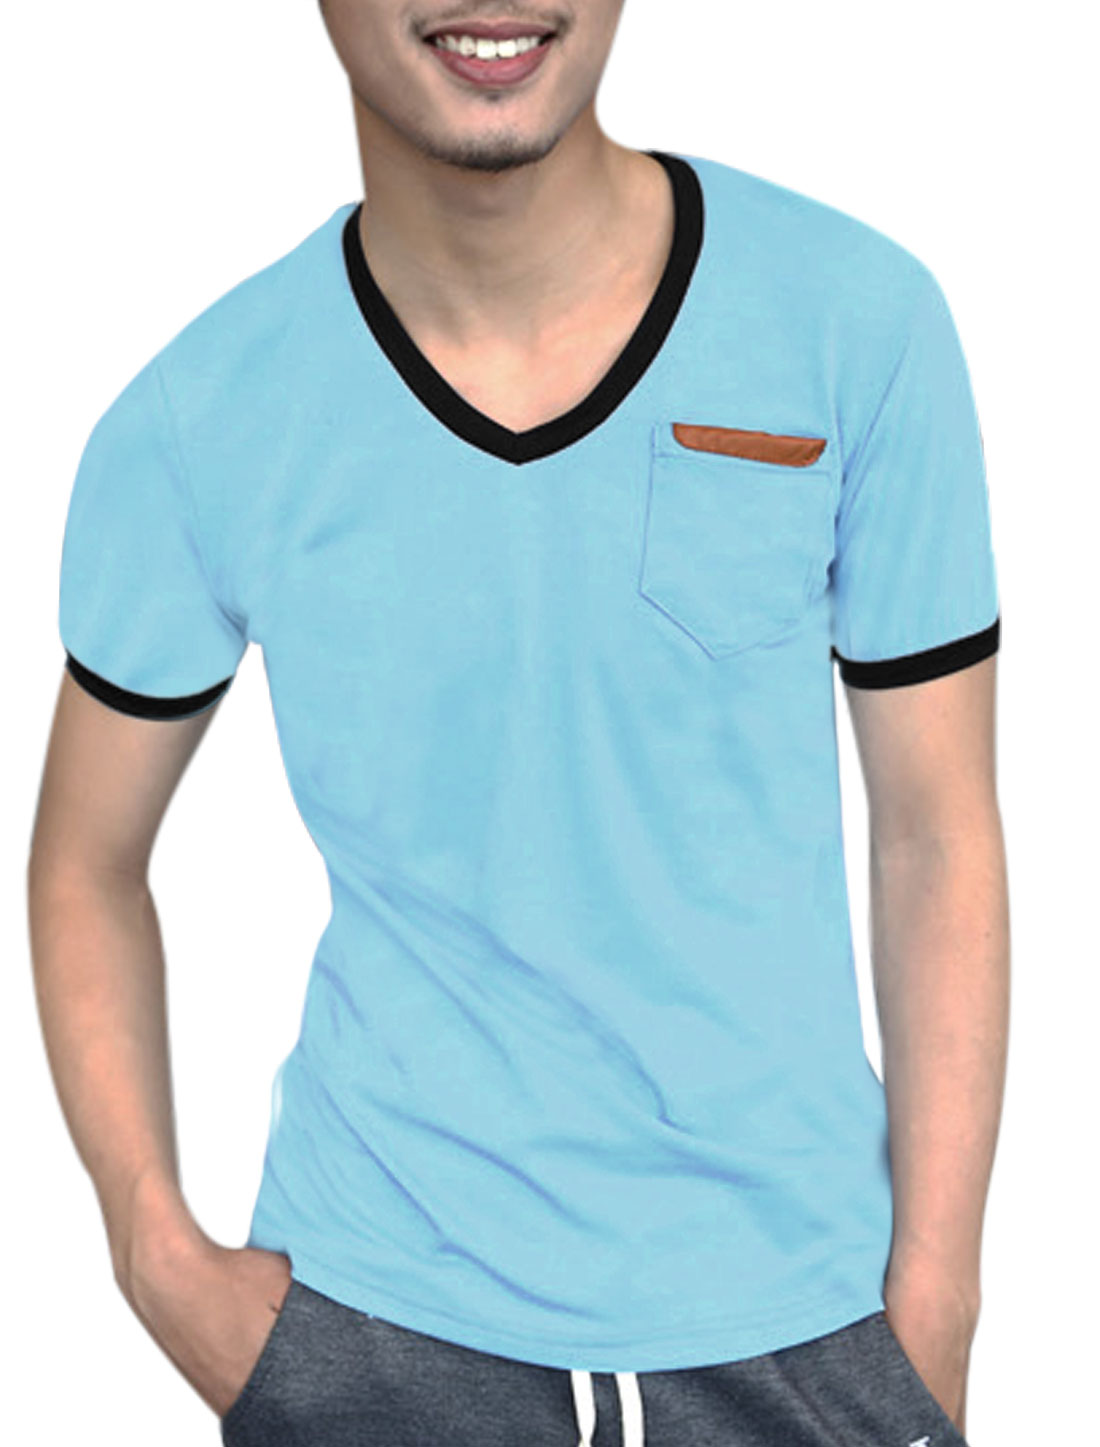 Men Single Breast Pocket Panel V Neck Slim Fit Tee Top Light Blue M